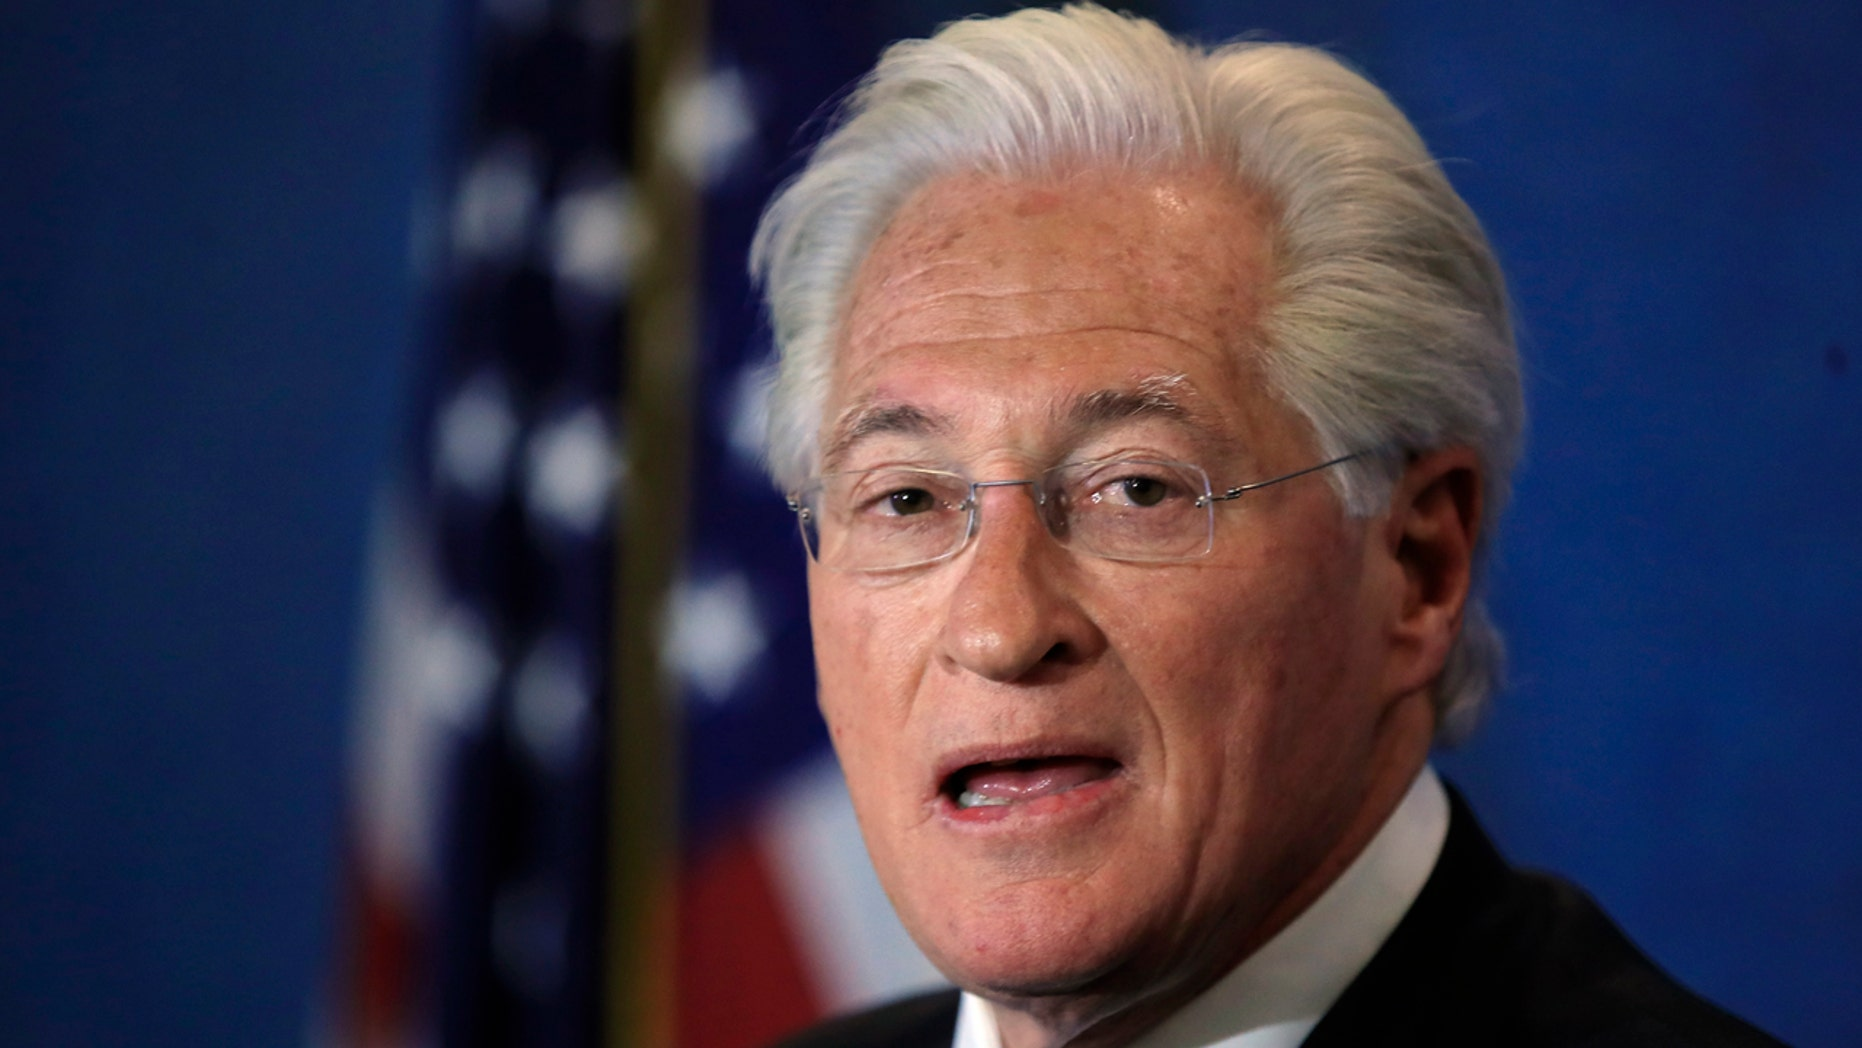 In this June 8, 2017, file photo, Marc Kasowitz personal attorney of President Donald Trump makes a statement at the National Press Club, following the congressional testimony of former FBI Director James Comey in Washington.